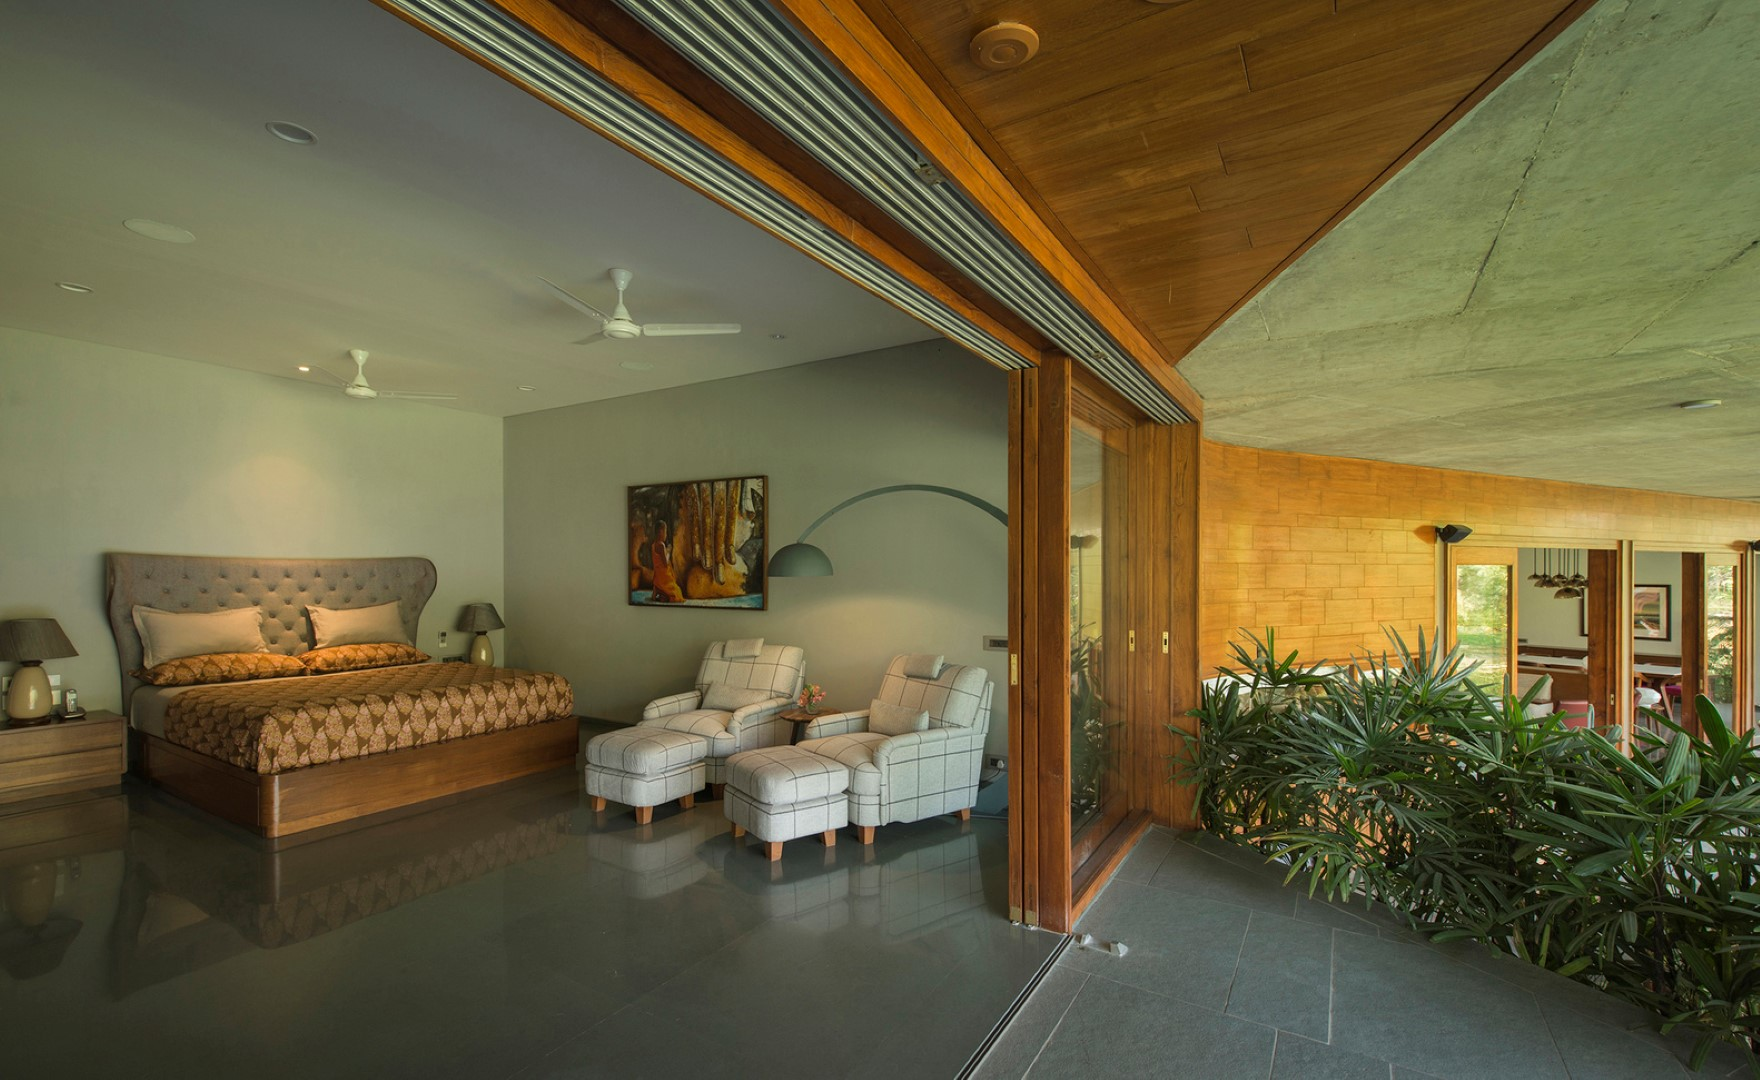 The Verandah House | Modo Designs - The Architects Diary on kitchen house designs, patio house designs, hill country house designs, terrace house designs, countryside house designs, bathroom house designs, deck house designs, garage house designs, balcony house designs,